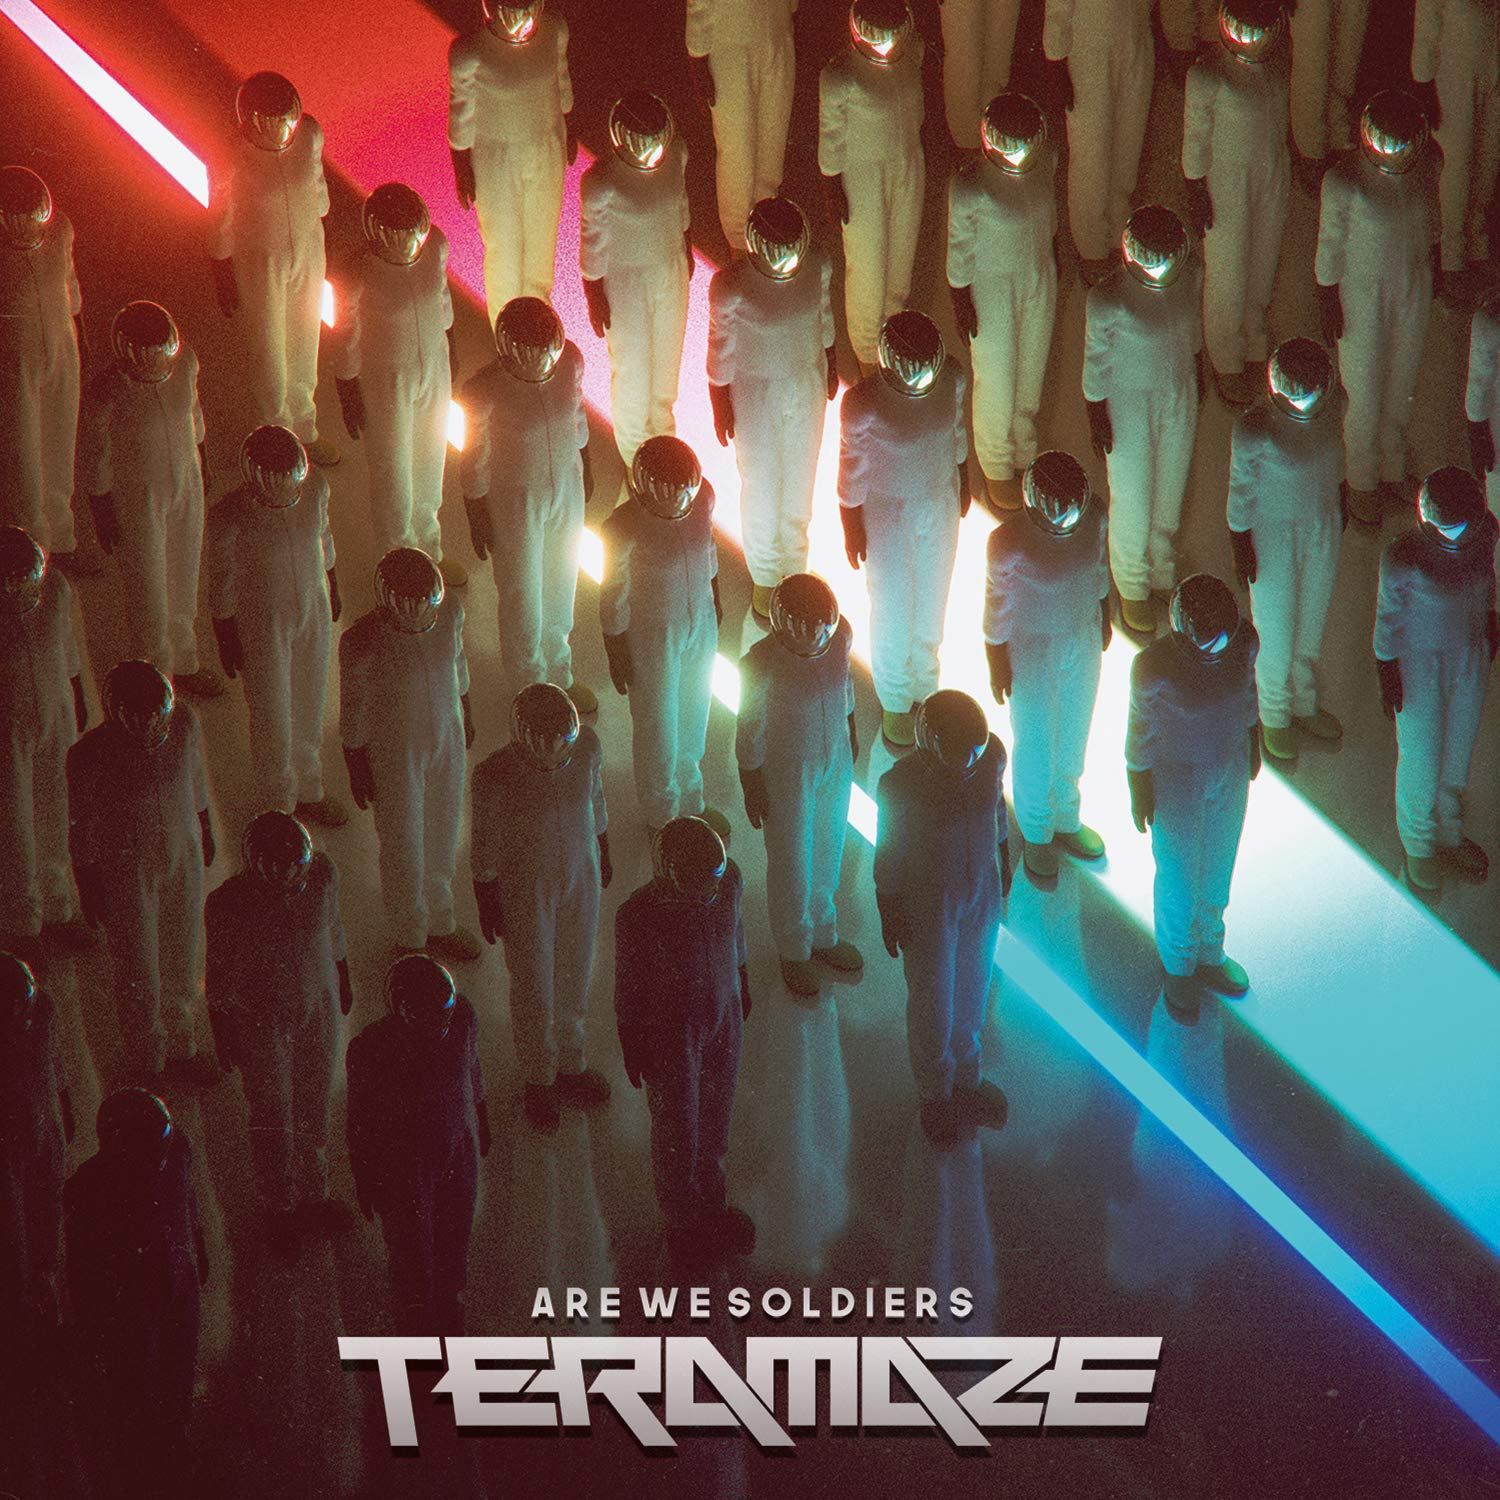 Teramaze - Are We Soldiers [LTD 2xLP]